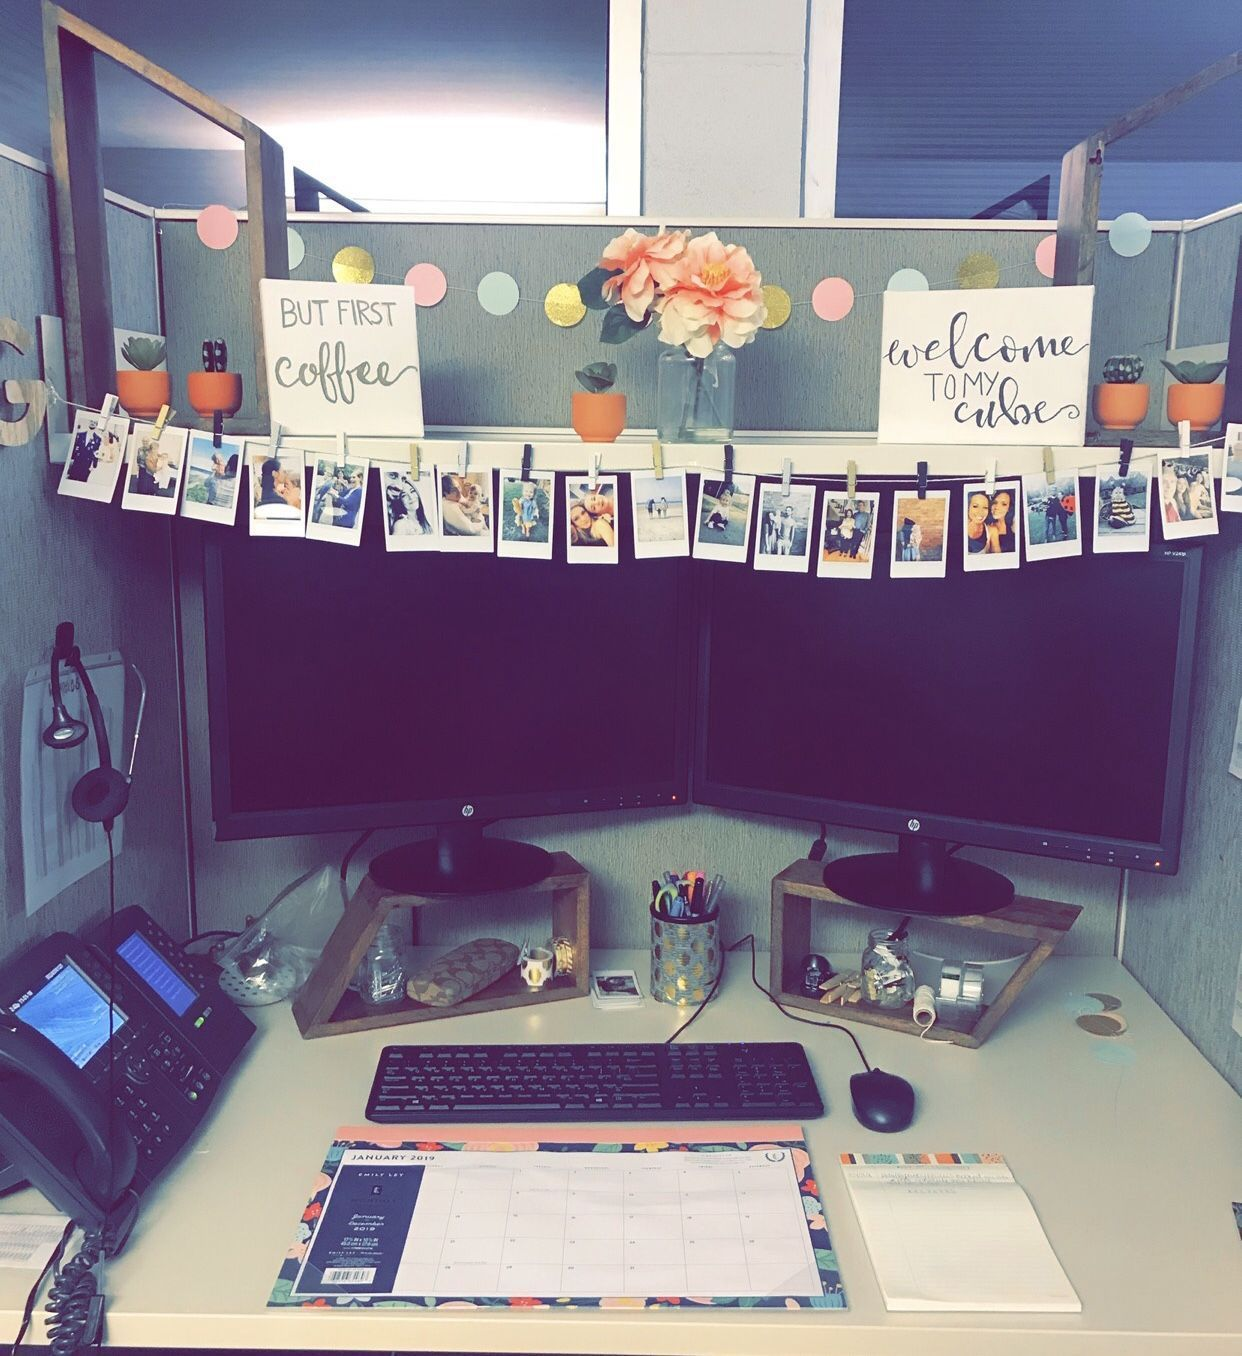 51 Diy Cubicle Decor Ideas For Better Working Space Work Cubicle